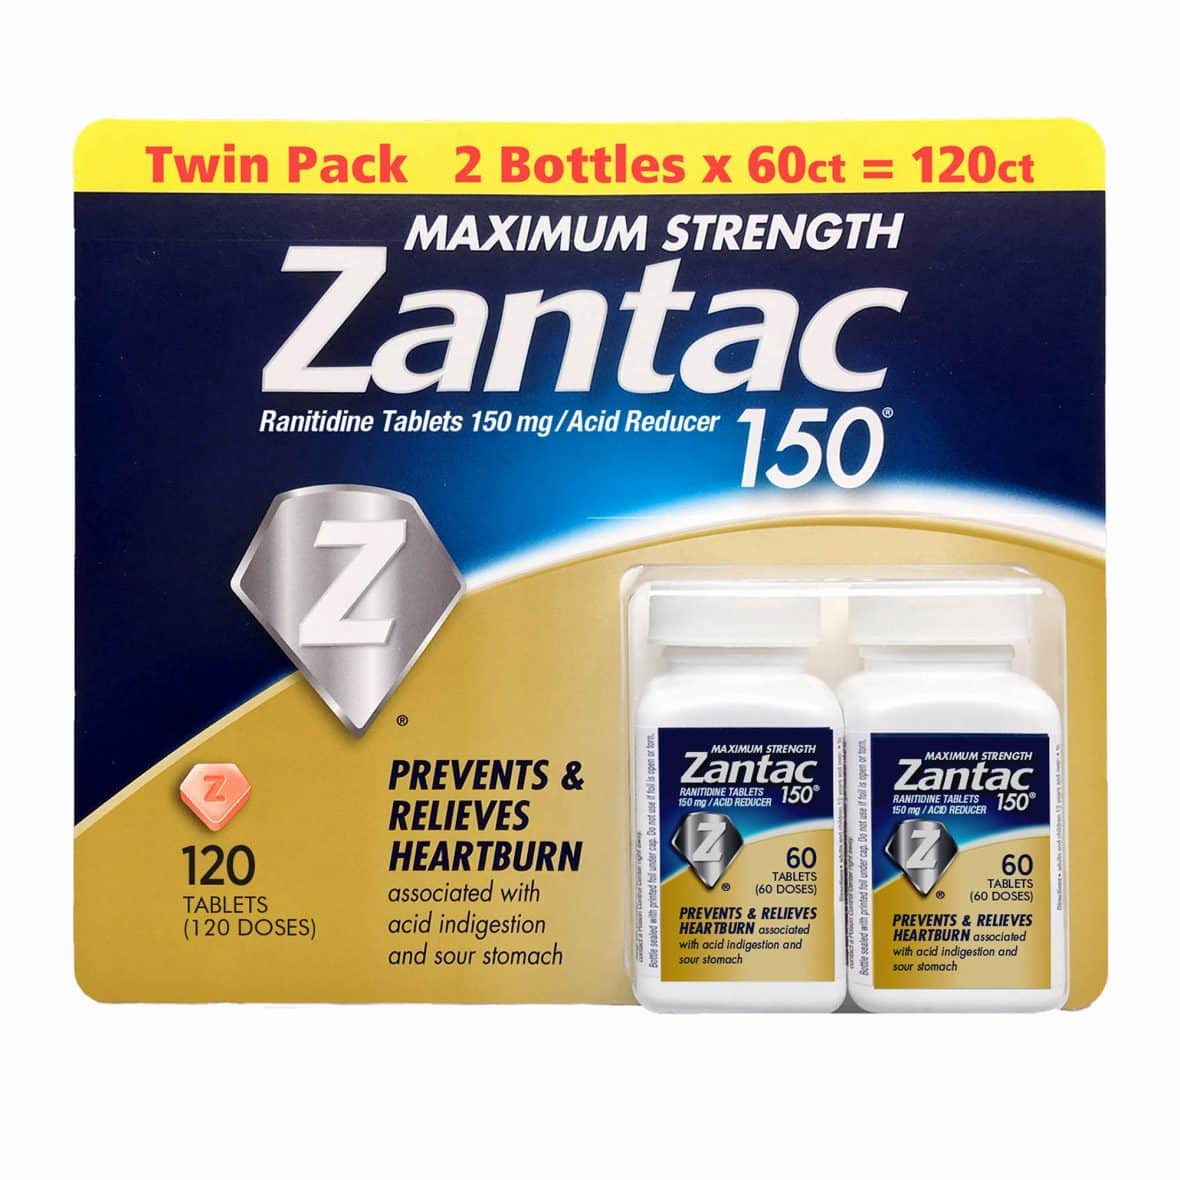 picture relating to Zantac Printable Coupon identified as $3.00 off Zantac Printable Coupon My BJs Wholesale Club